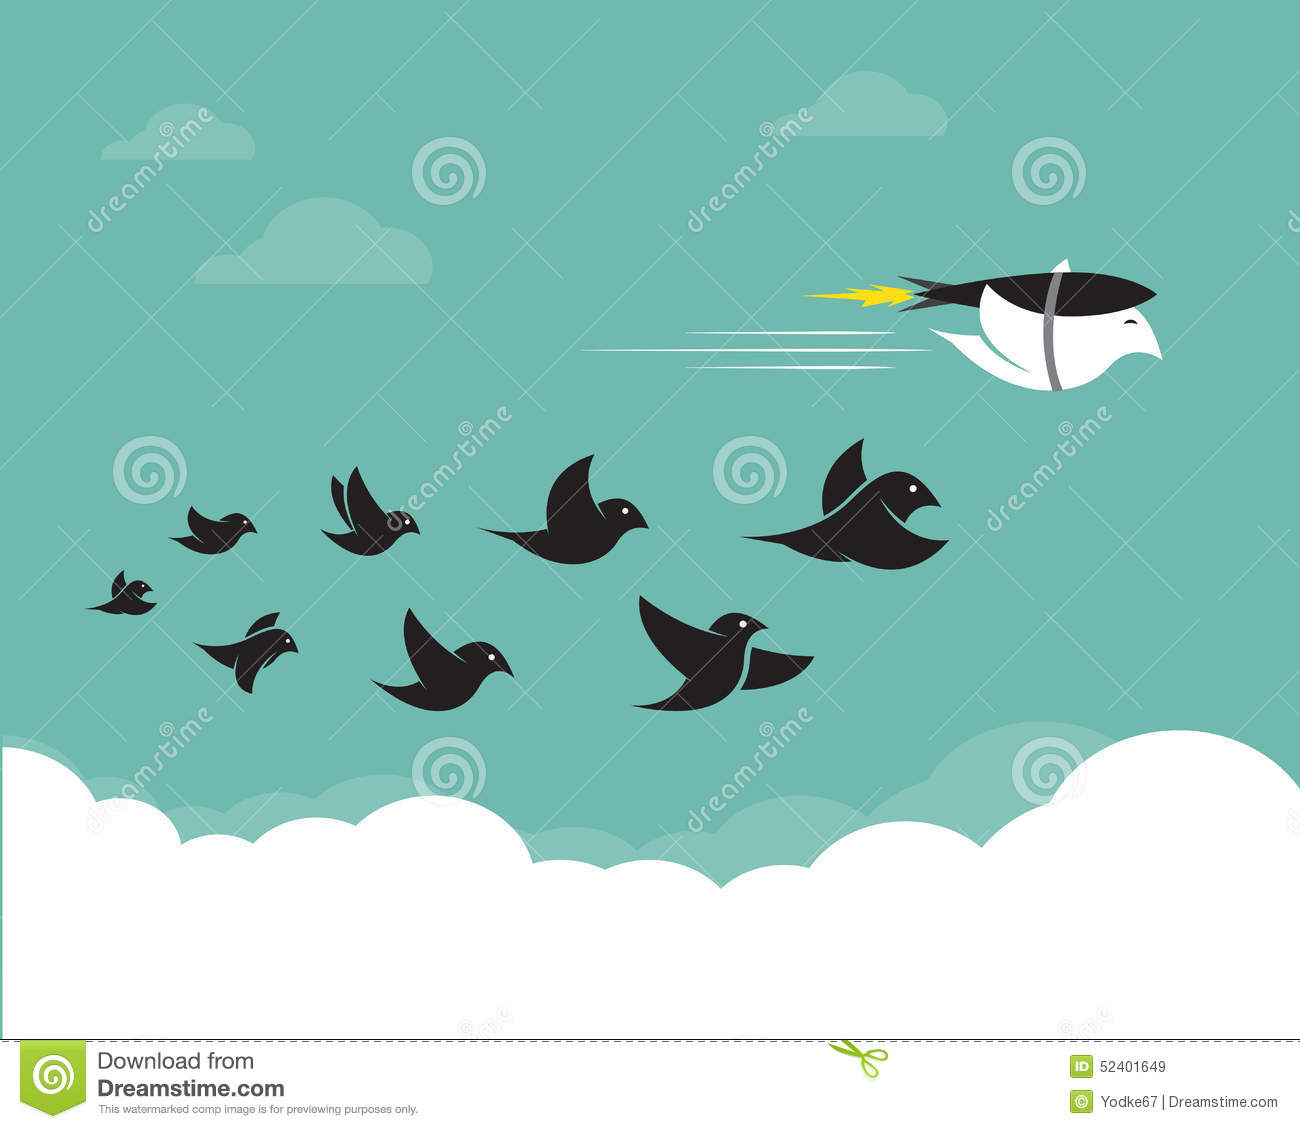 Vector Images Of Birds And Rockets In The Sky. Stock